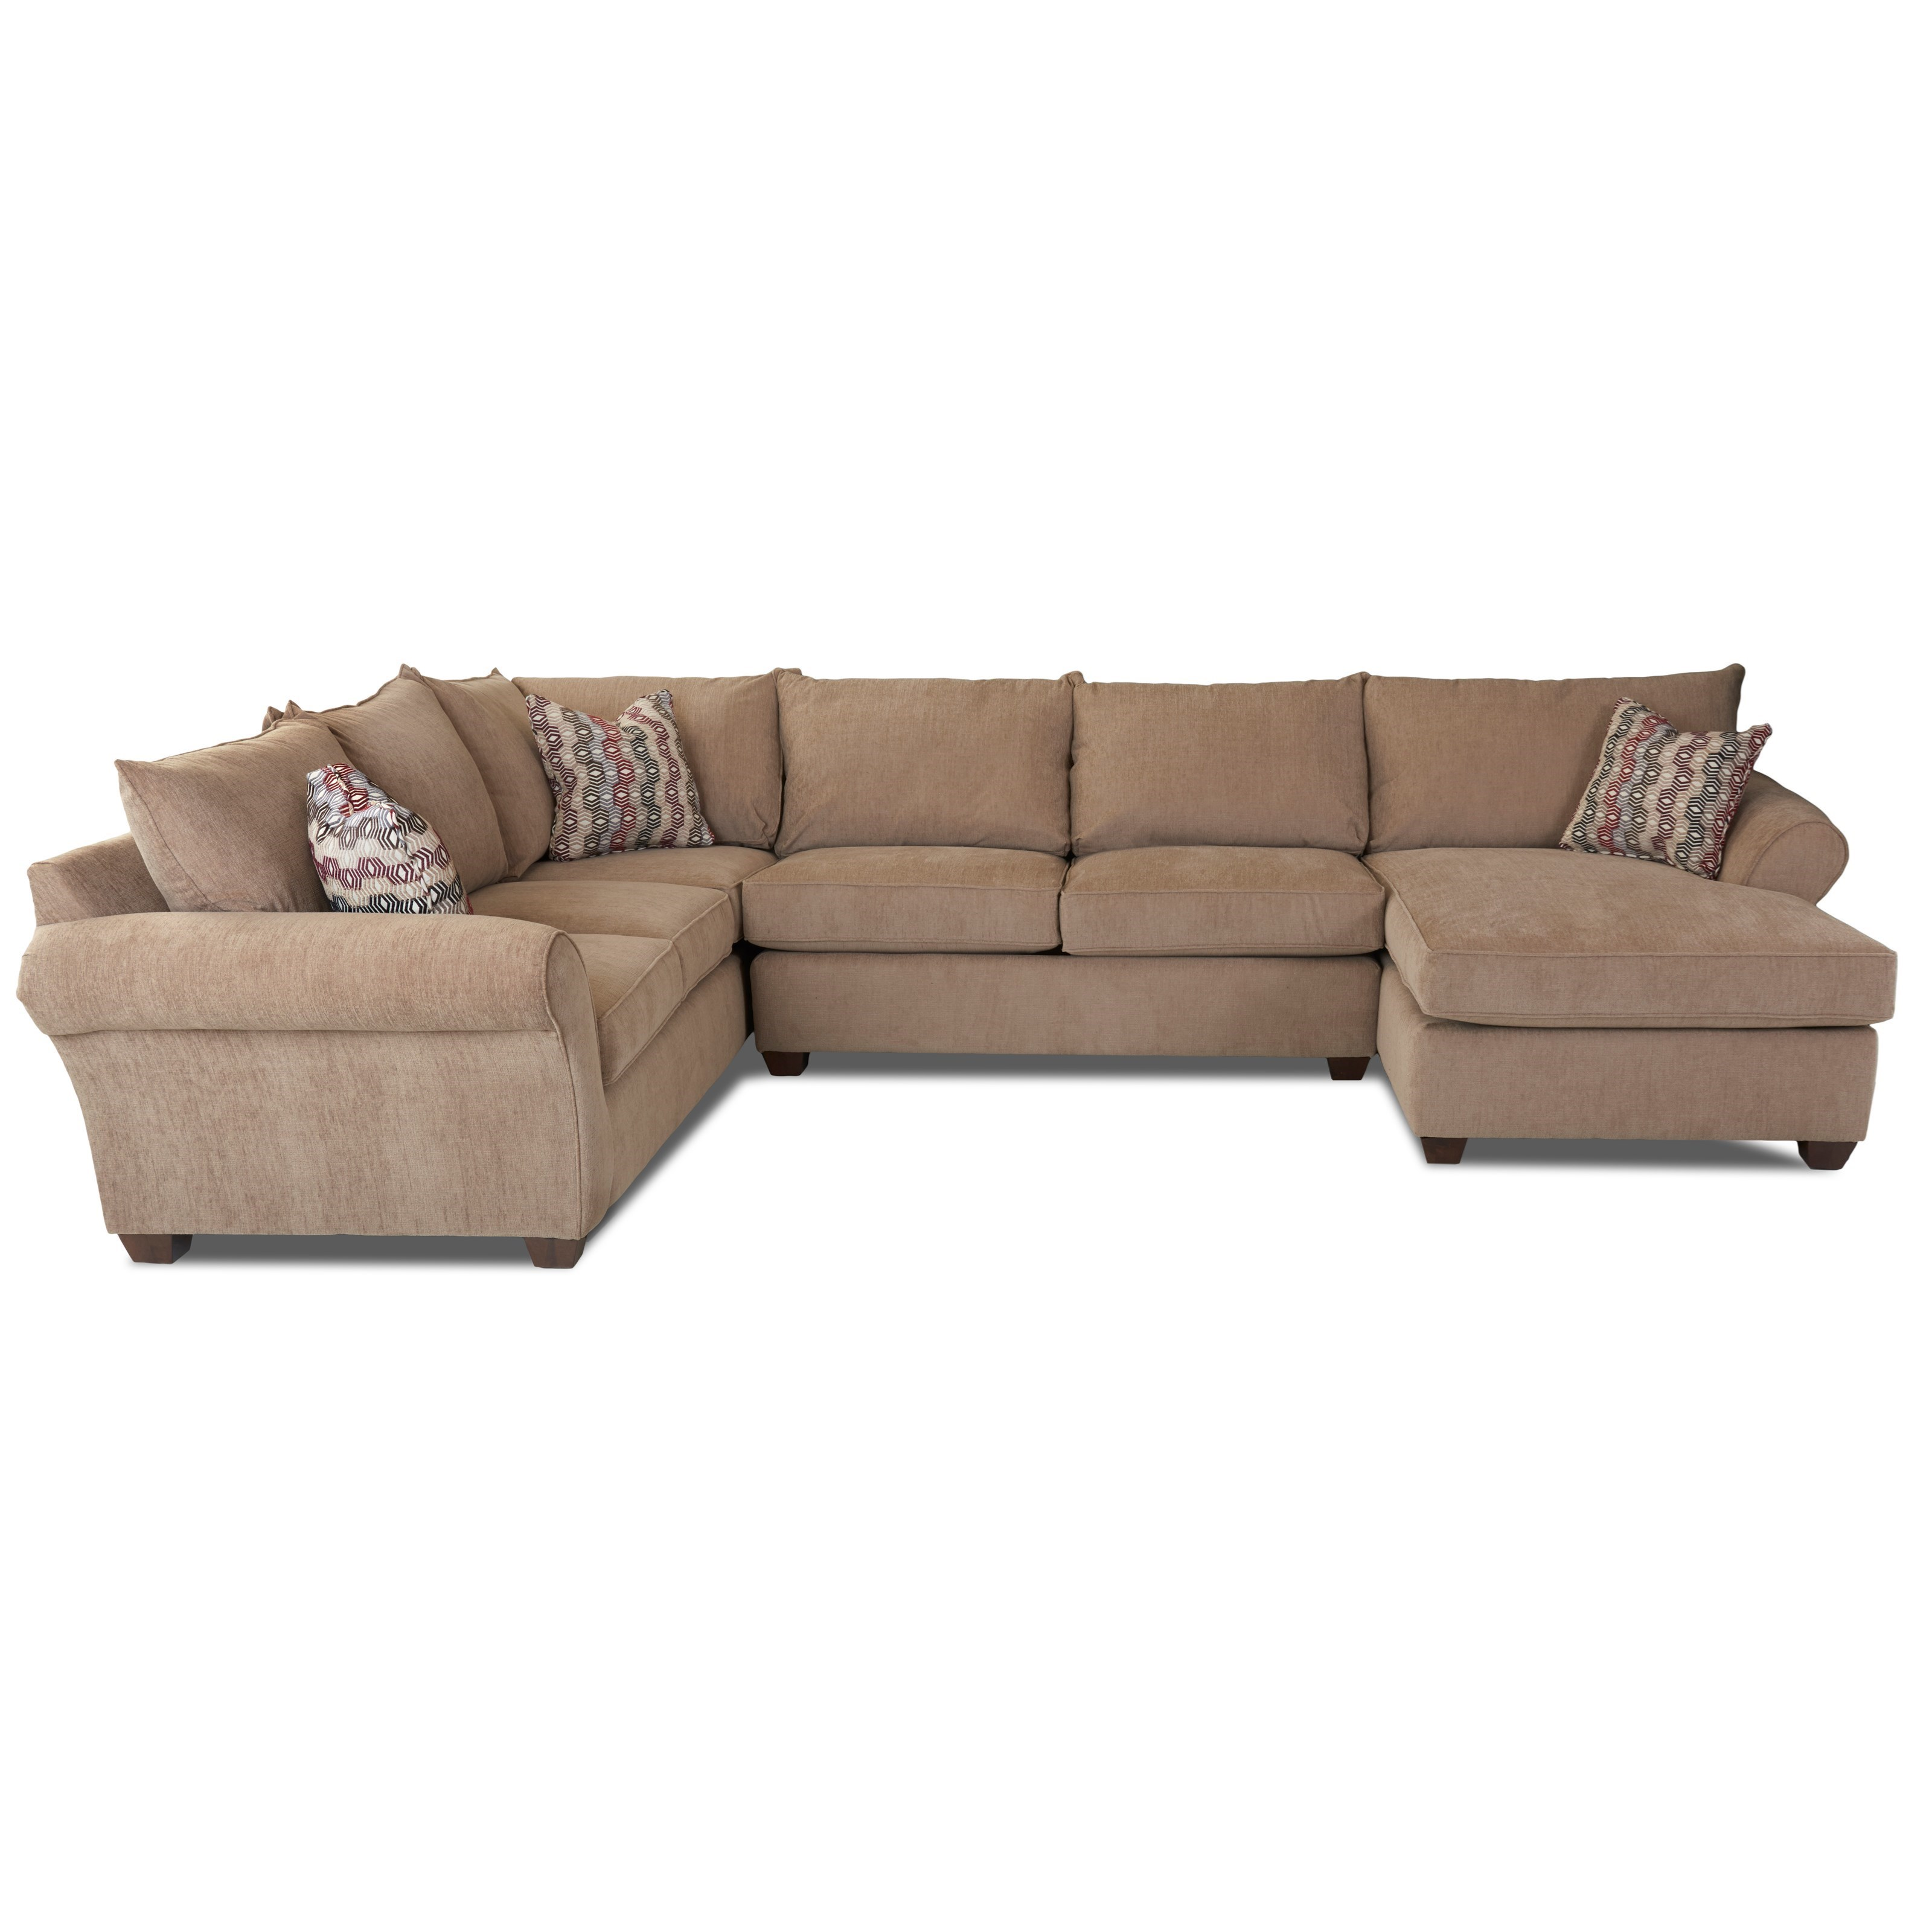 Klaussner Fletcher Transitional Sectional Sofa Northeast